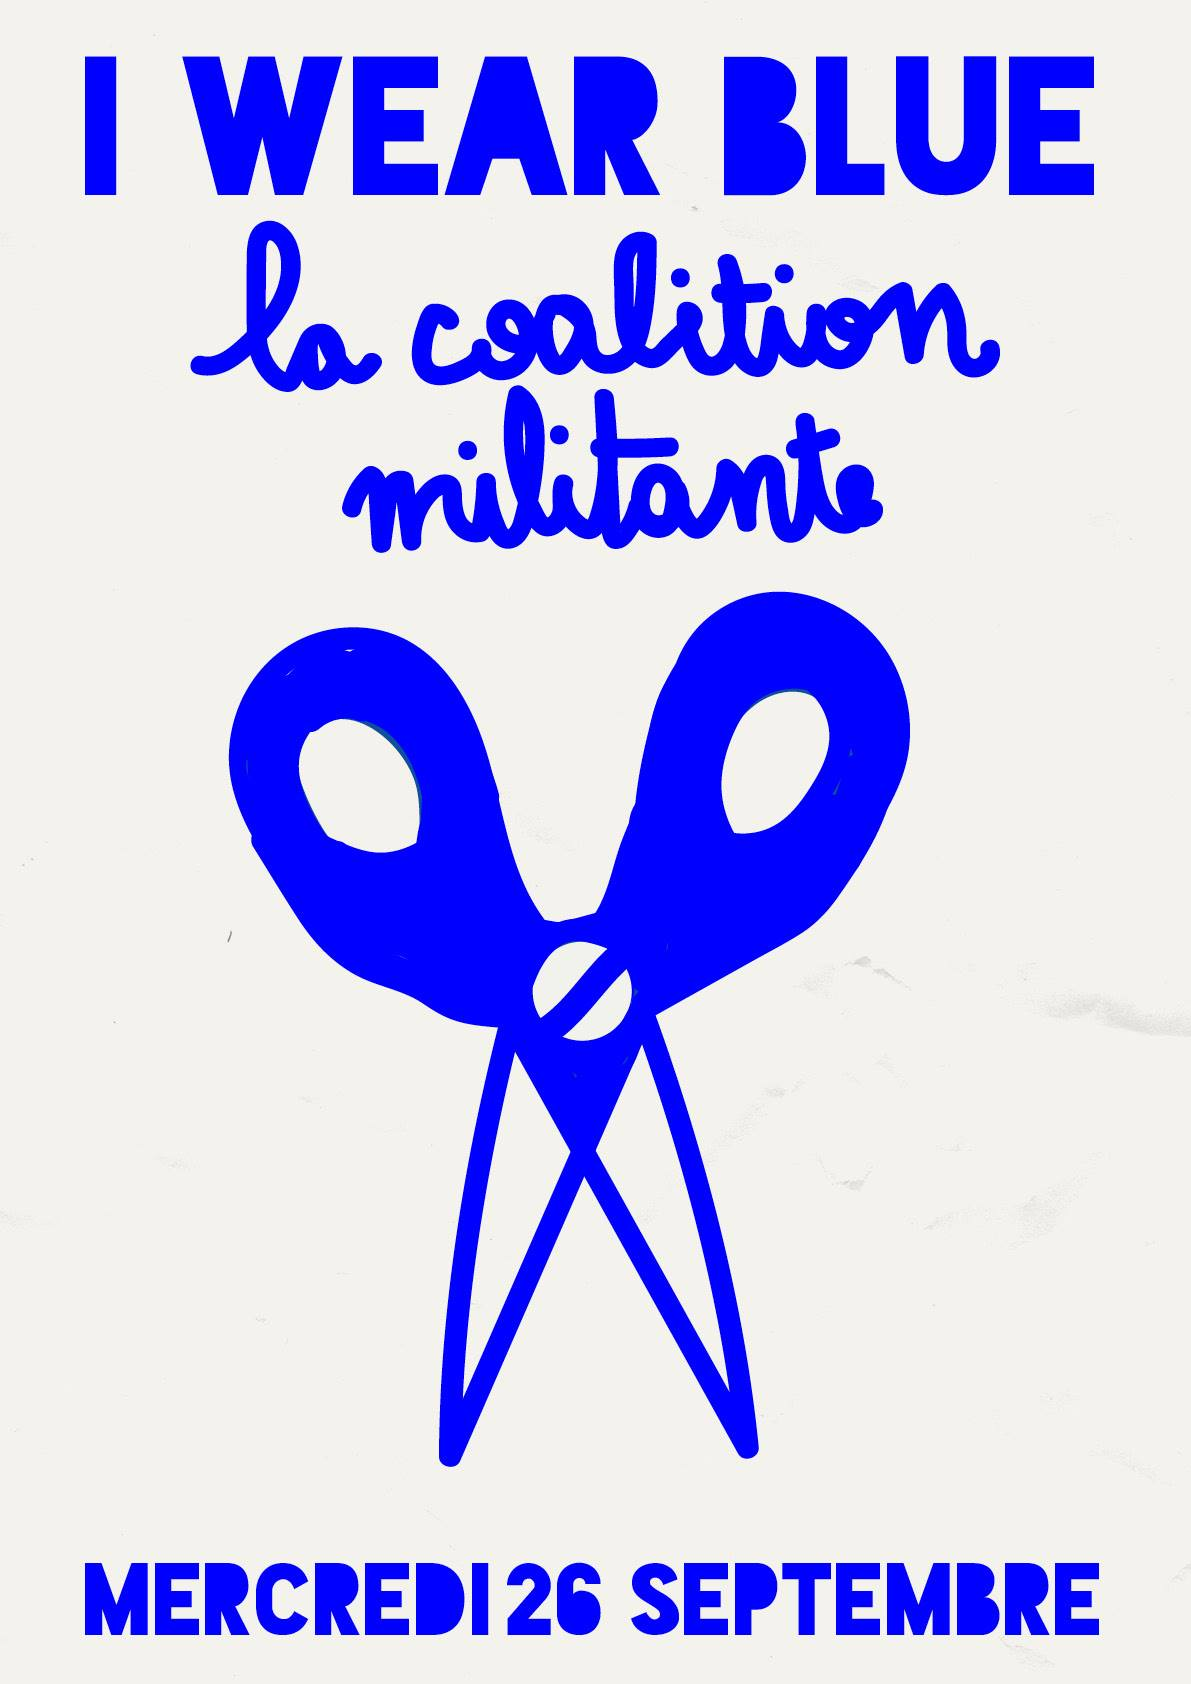 La coalition militante - Afterwork: 6 - 9 pmAbout a Worker invites other designers to celebrate new systems of production and consumptionPop-up and debate with Brut Clothing, Wendy Andreu, Claire Dartigues, Maximum et Les Nouveaux Créateurs